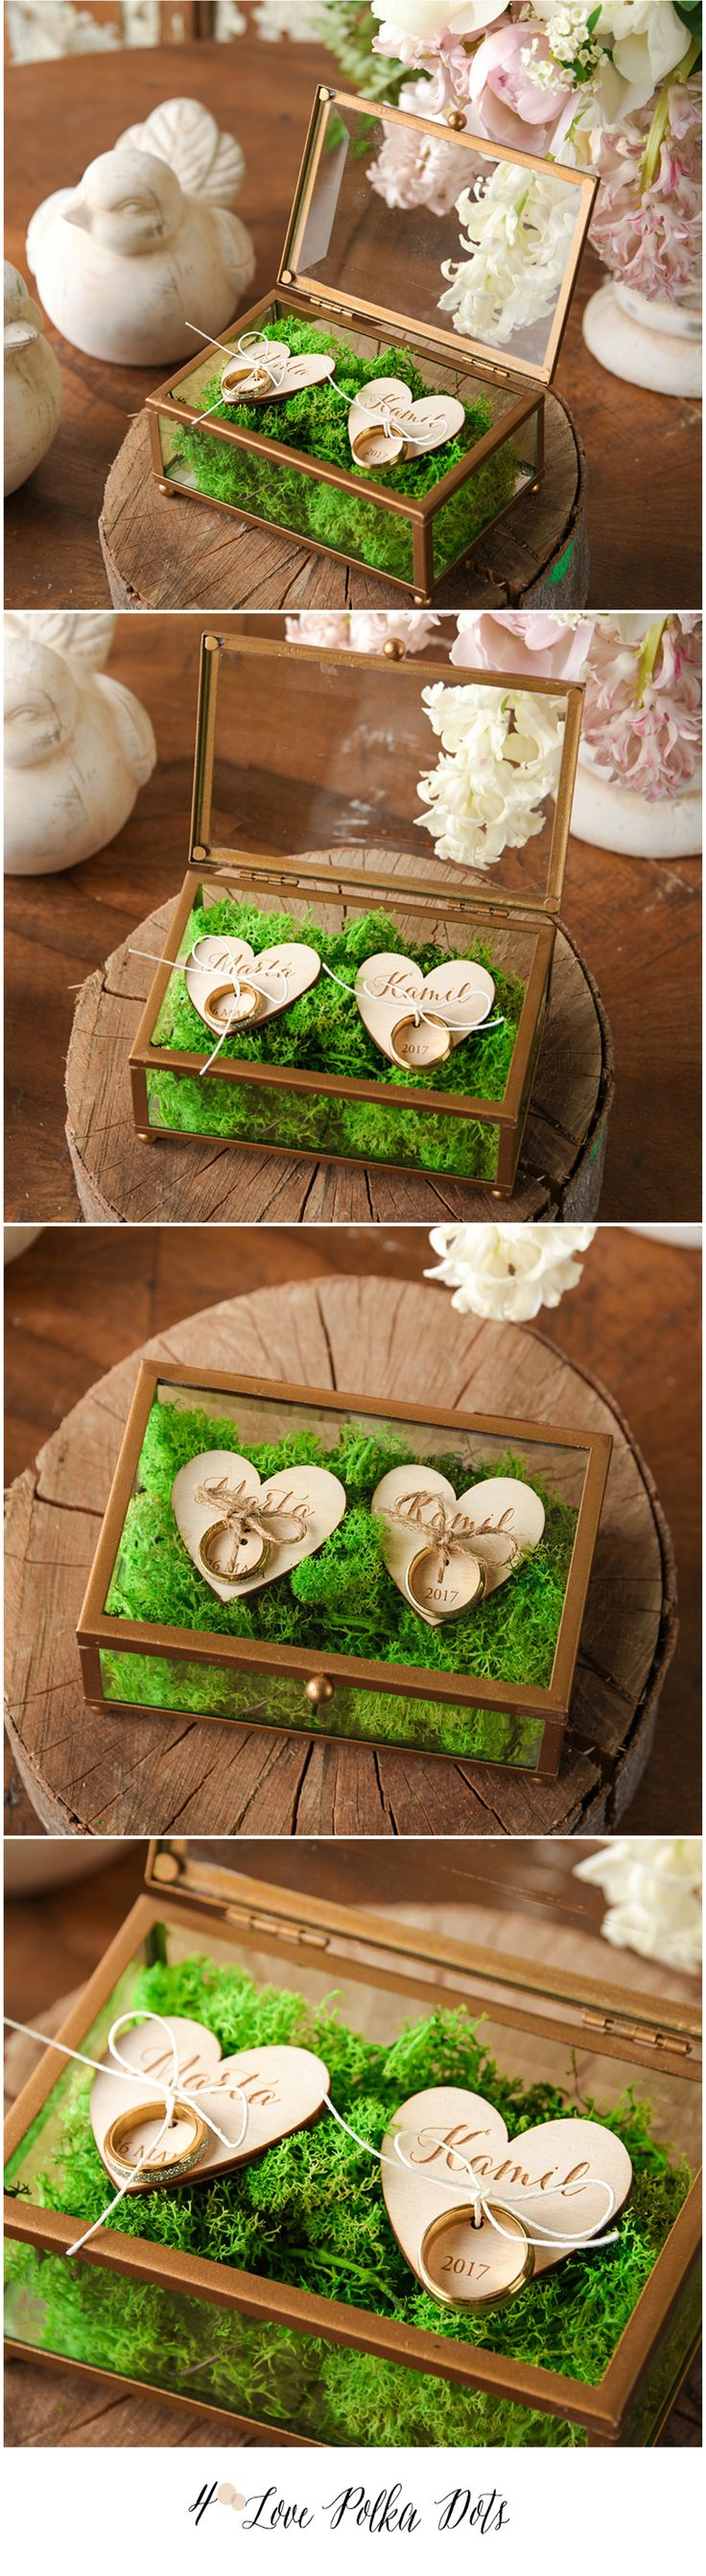 Unique Glass Wedding Ring Box with moss and wooden hearts #rustic #weddingideas #green #greenery #unique #ringbox #weddingringbox